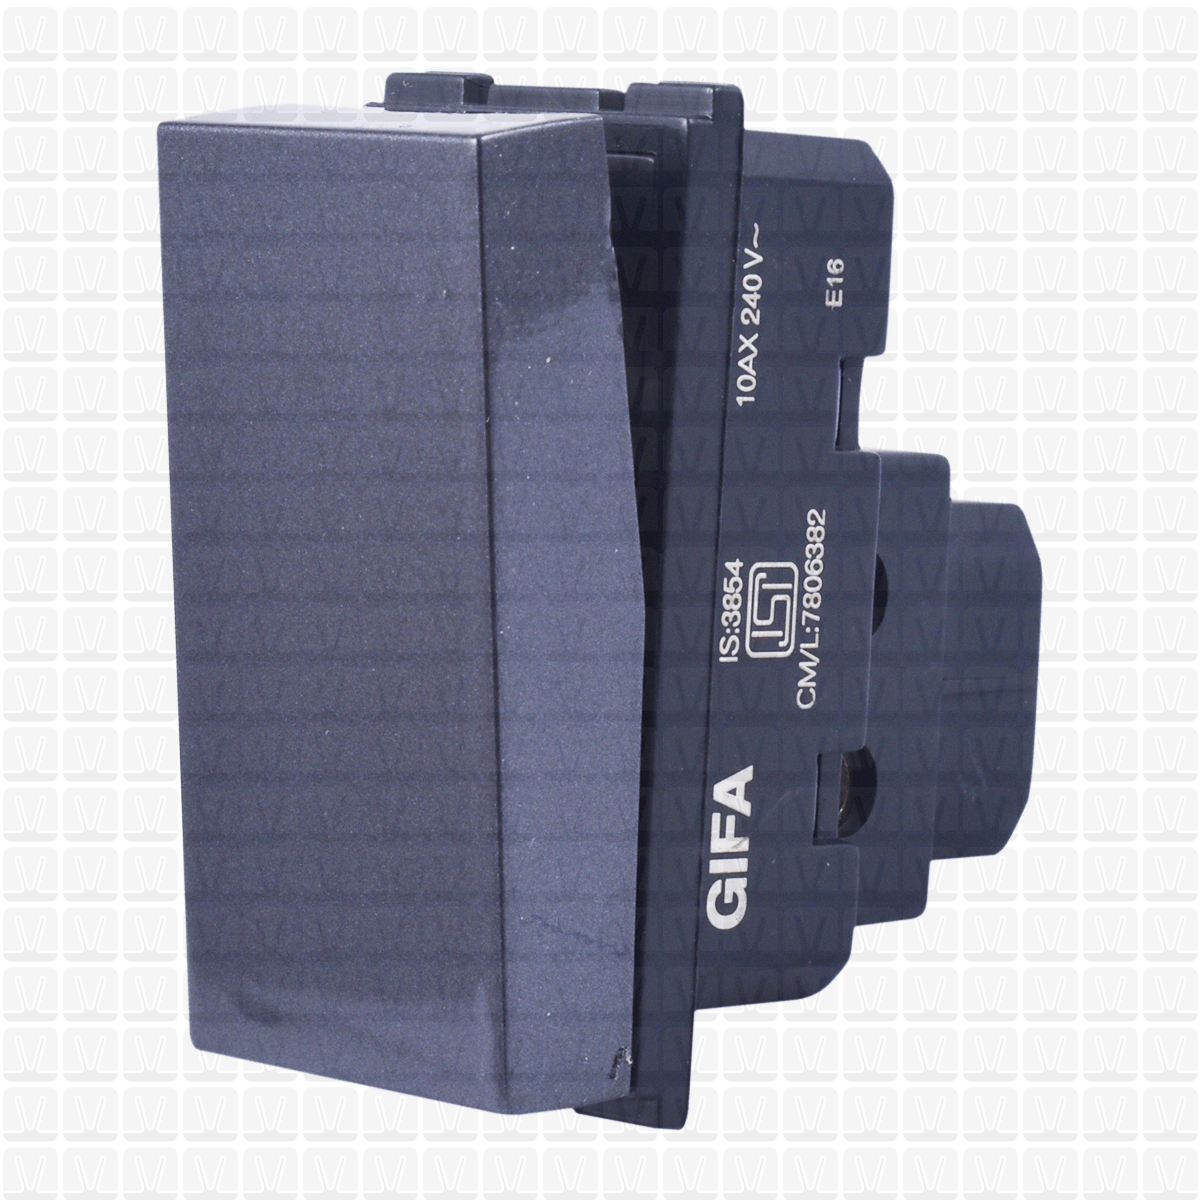 Gifa Grey One Way Switch 10 Amp Vardhman Shop Circuit